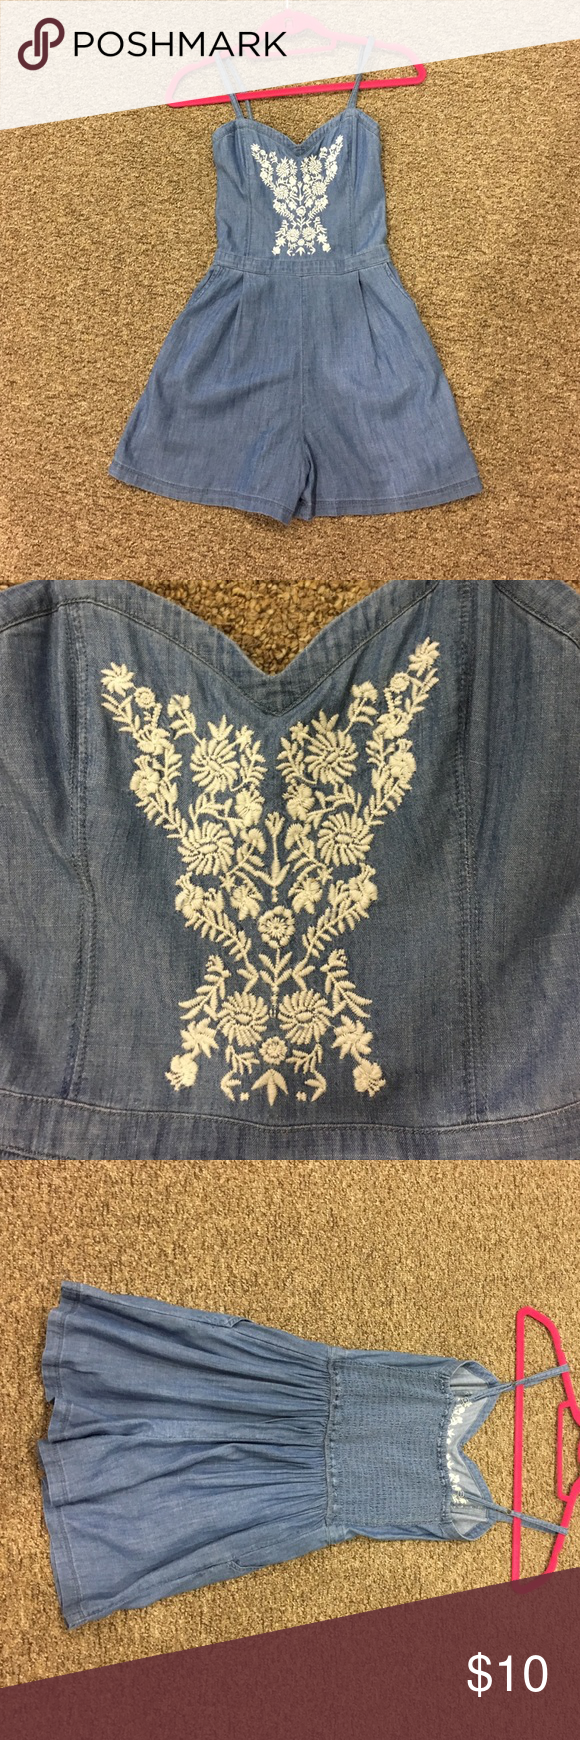 Hollister blue jean romper Perfect condition Hollister blue jean romper with adorable floral design! Hollister Pants Jumpsuits & Rompers